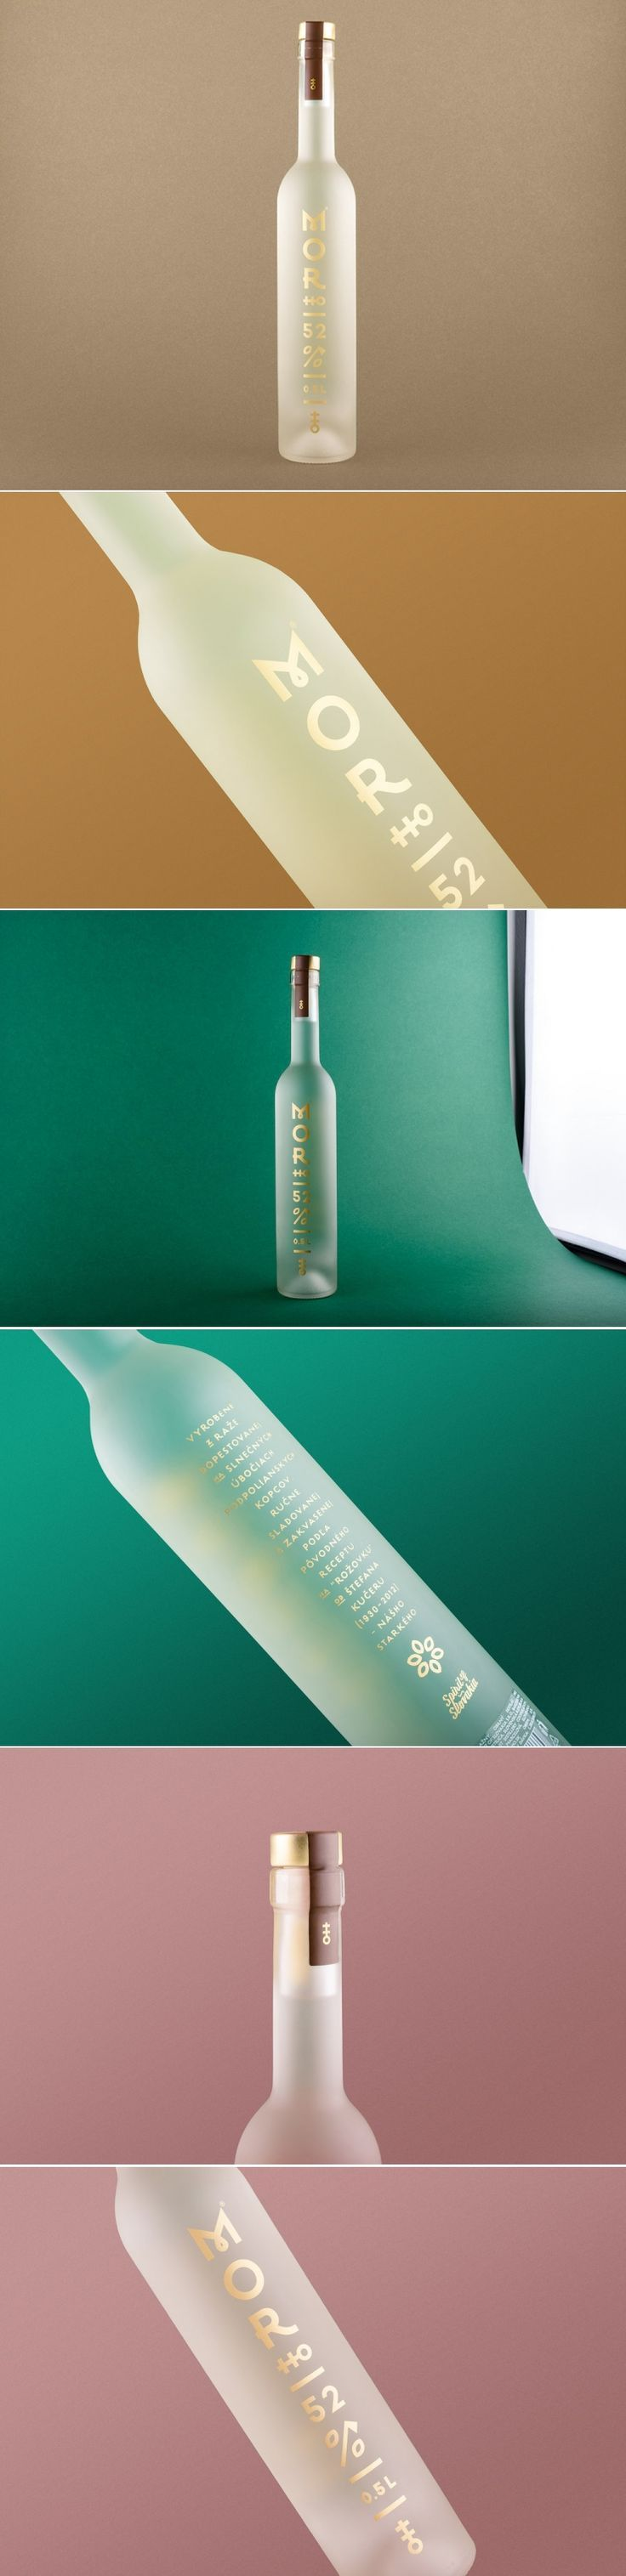 Morho is a Traditional Slovakian Spirit With A Nice Minimalistic Look — The Dieline | Packaging & Branding Design & Innovation News